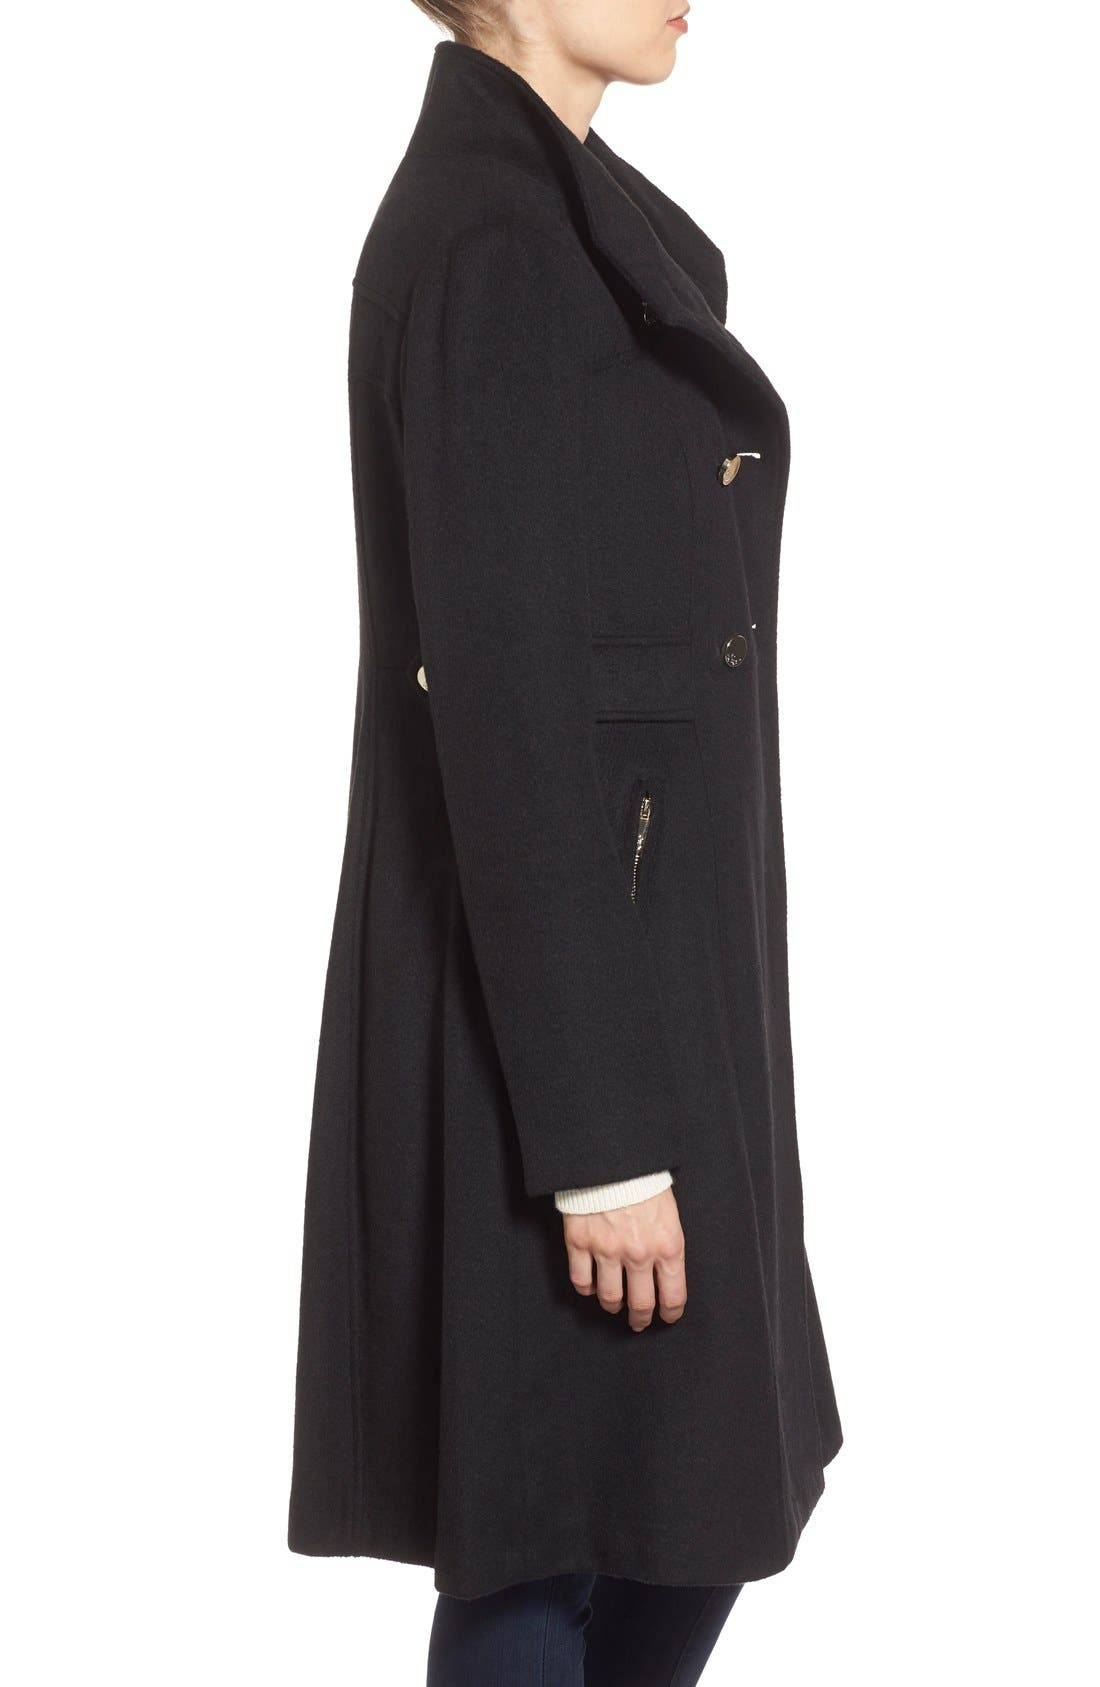 Wool Blend Long Military Coat,                             Alternate thumbnail 4, color,                             001